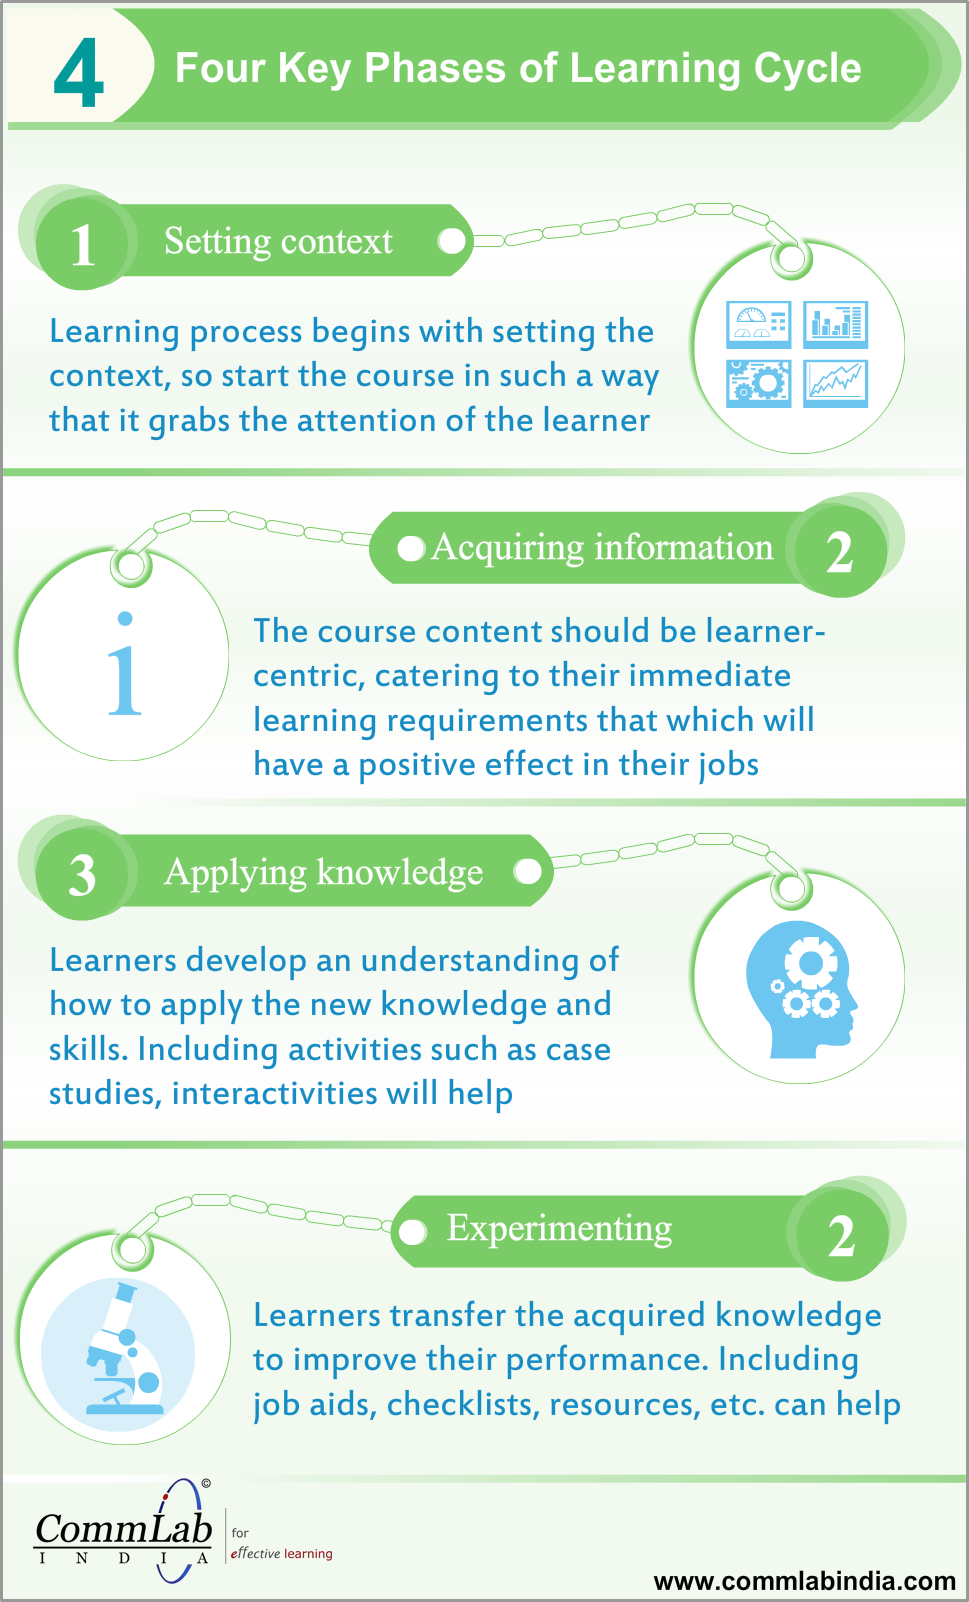 The four phases of learning cycle